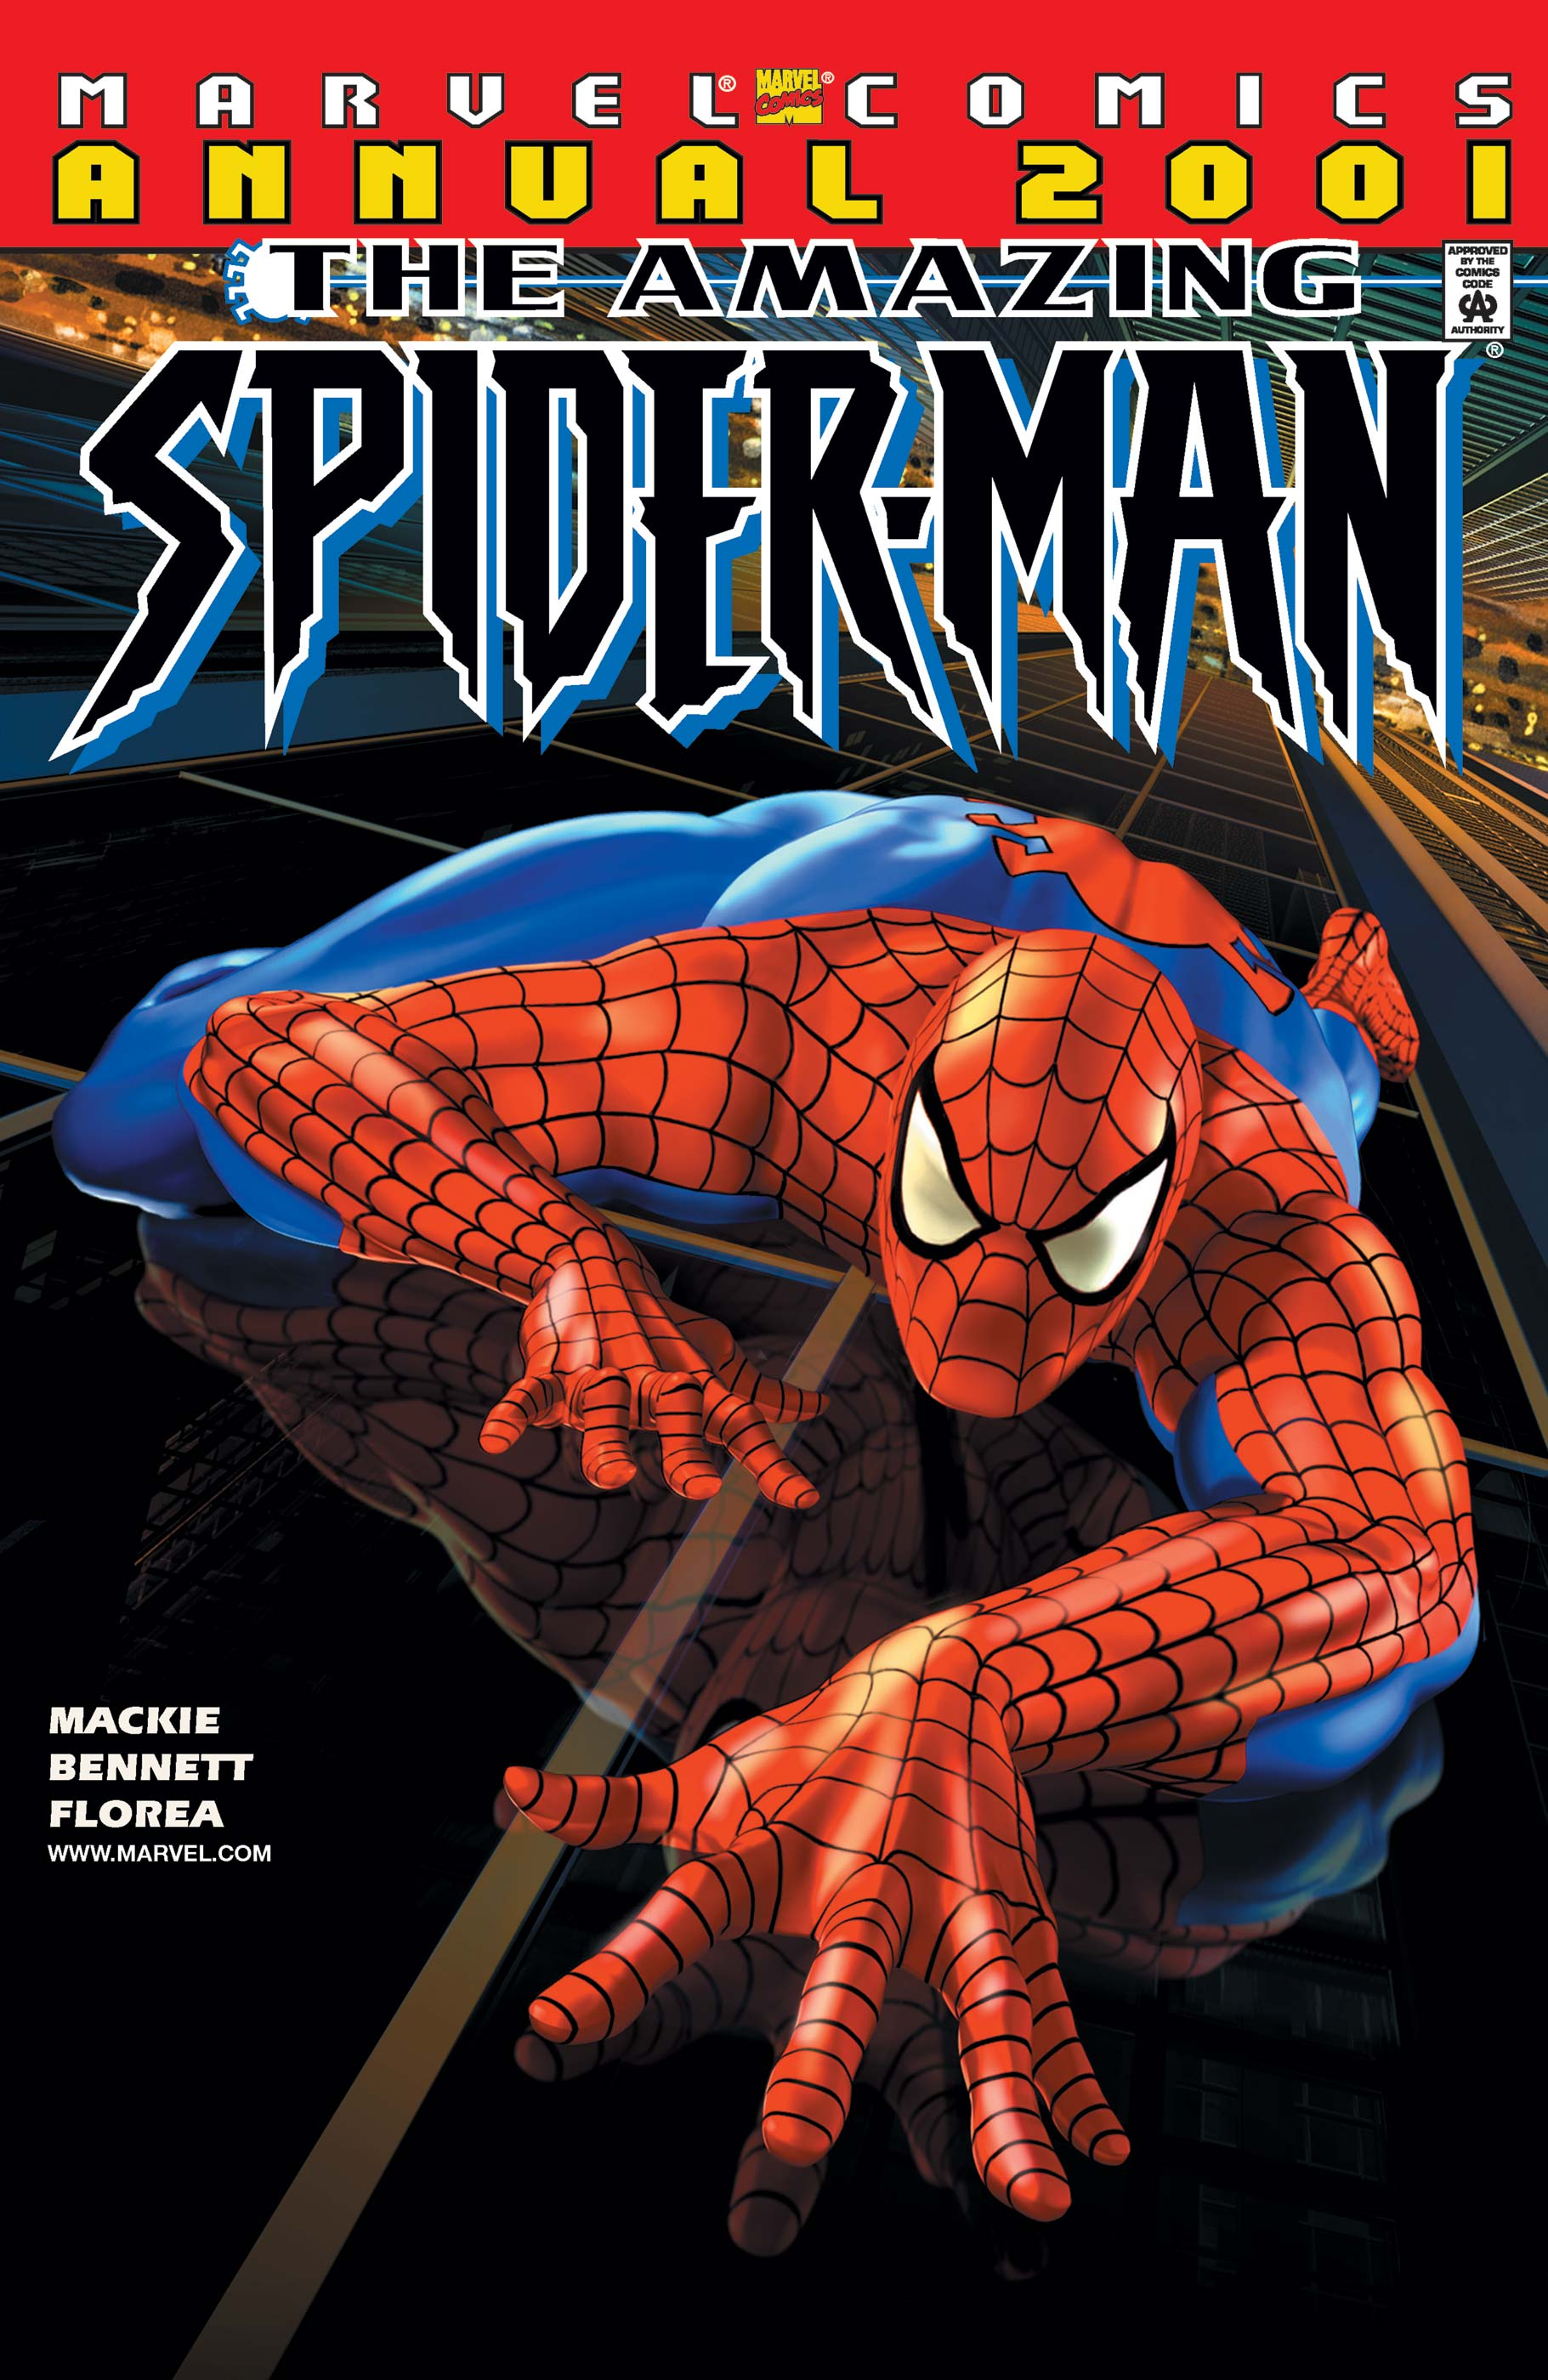 The Amazing Spider-Man Annual (2001) #1